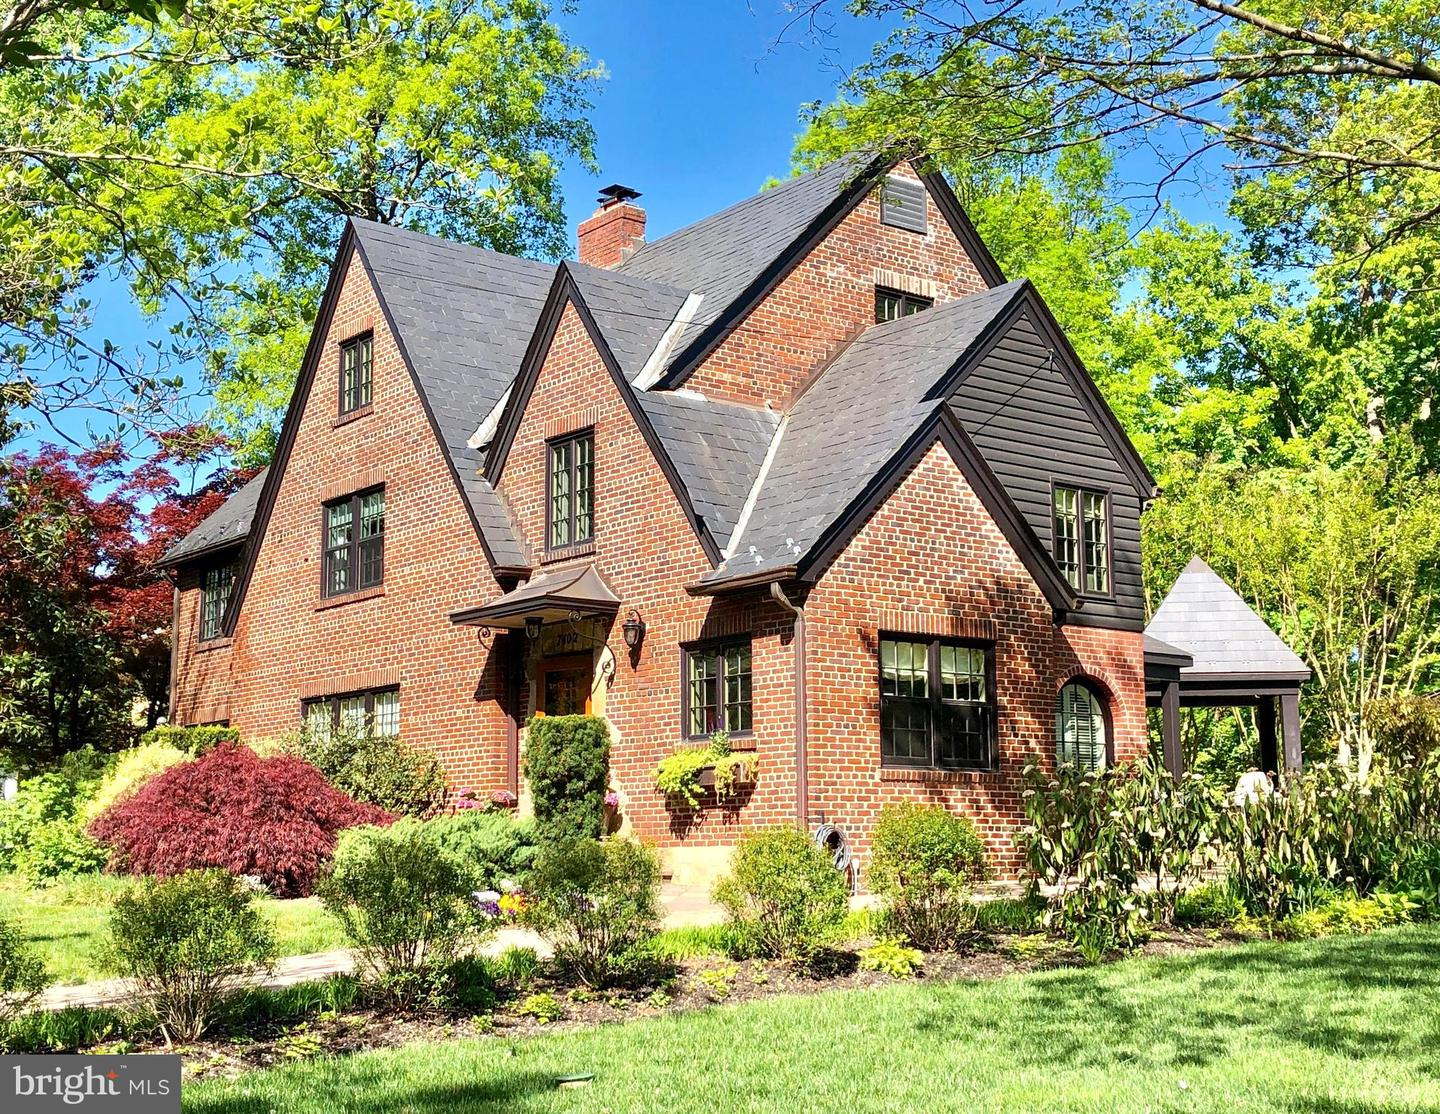 7402 MEADOW LANE, CHEVY CHASE, Maryland